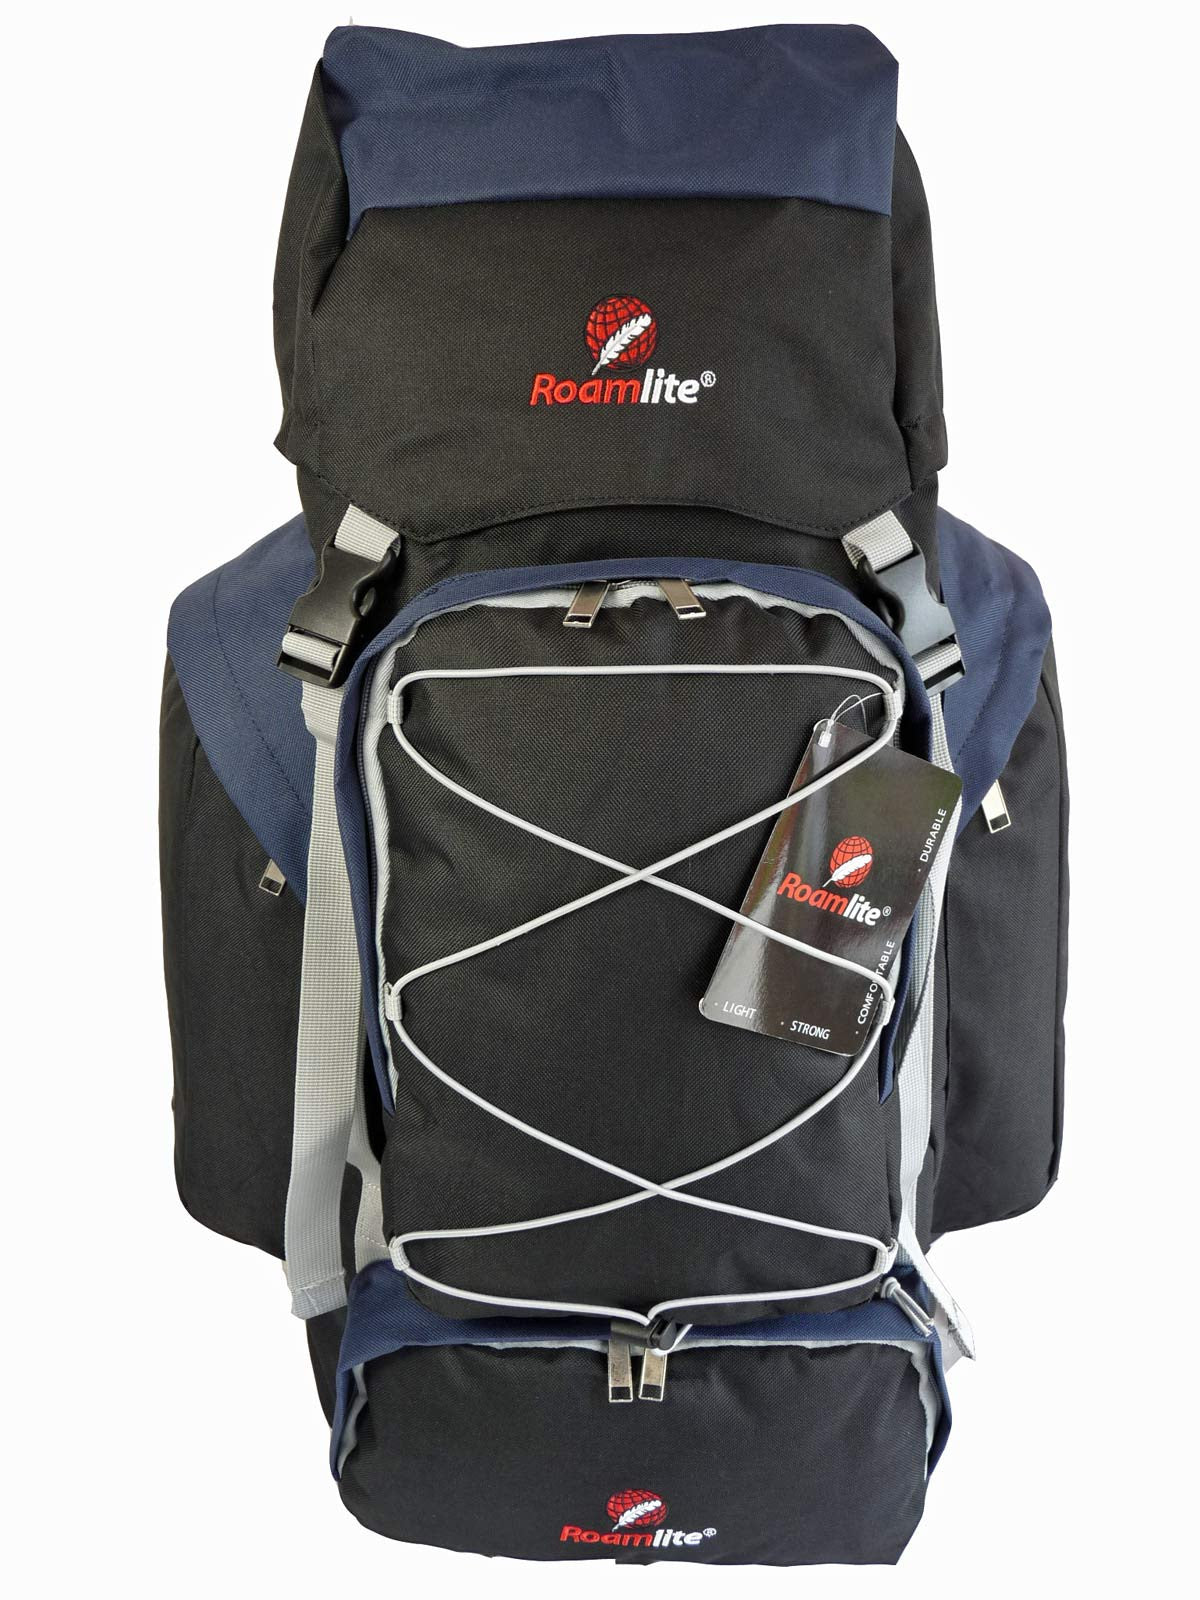 80 100 125 litre backpack navy blue front view